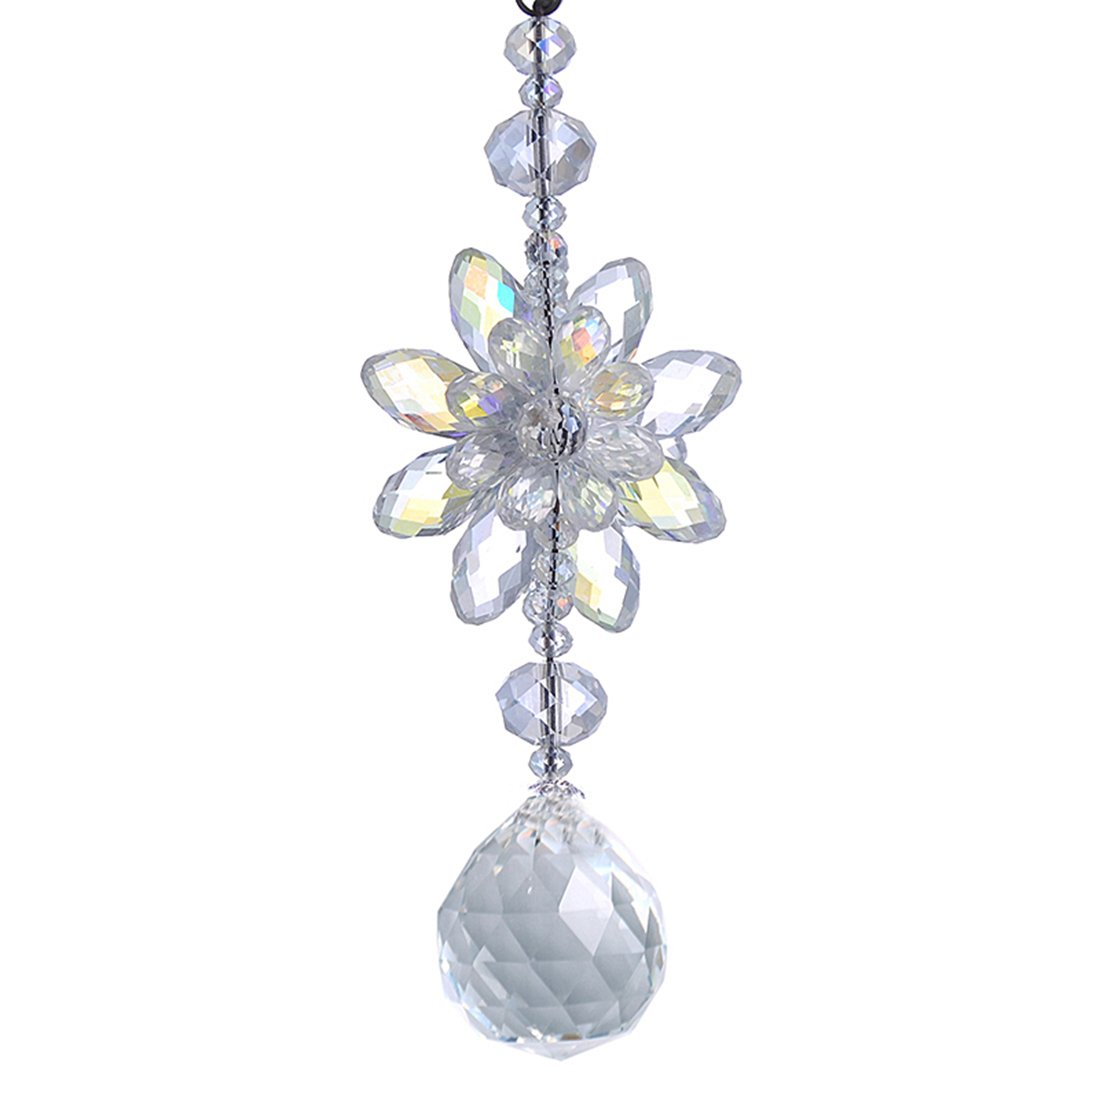 H&D Clear Hanging Crystal Ball Prisms Flower Fengshui Ornament Suncatcher Rear View Mirror Car Charm Decor